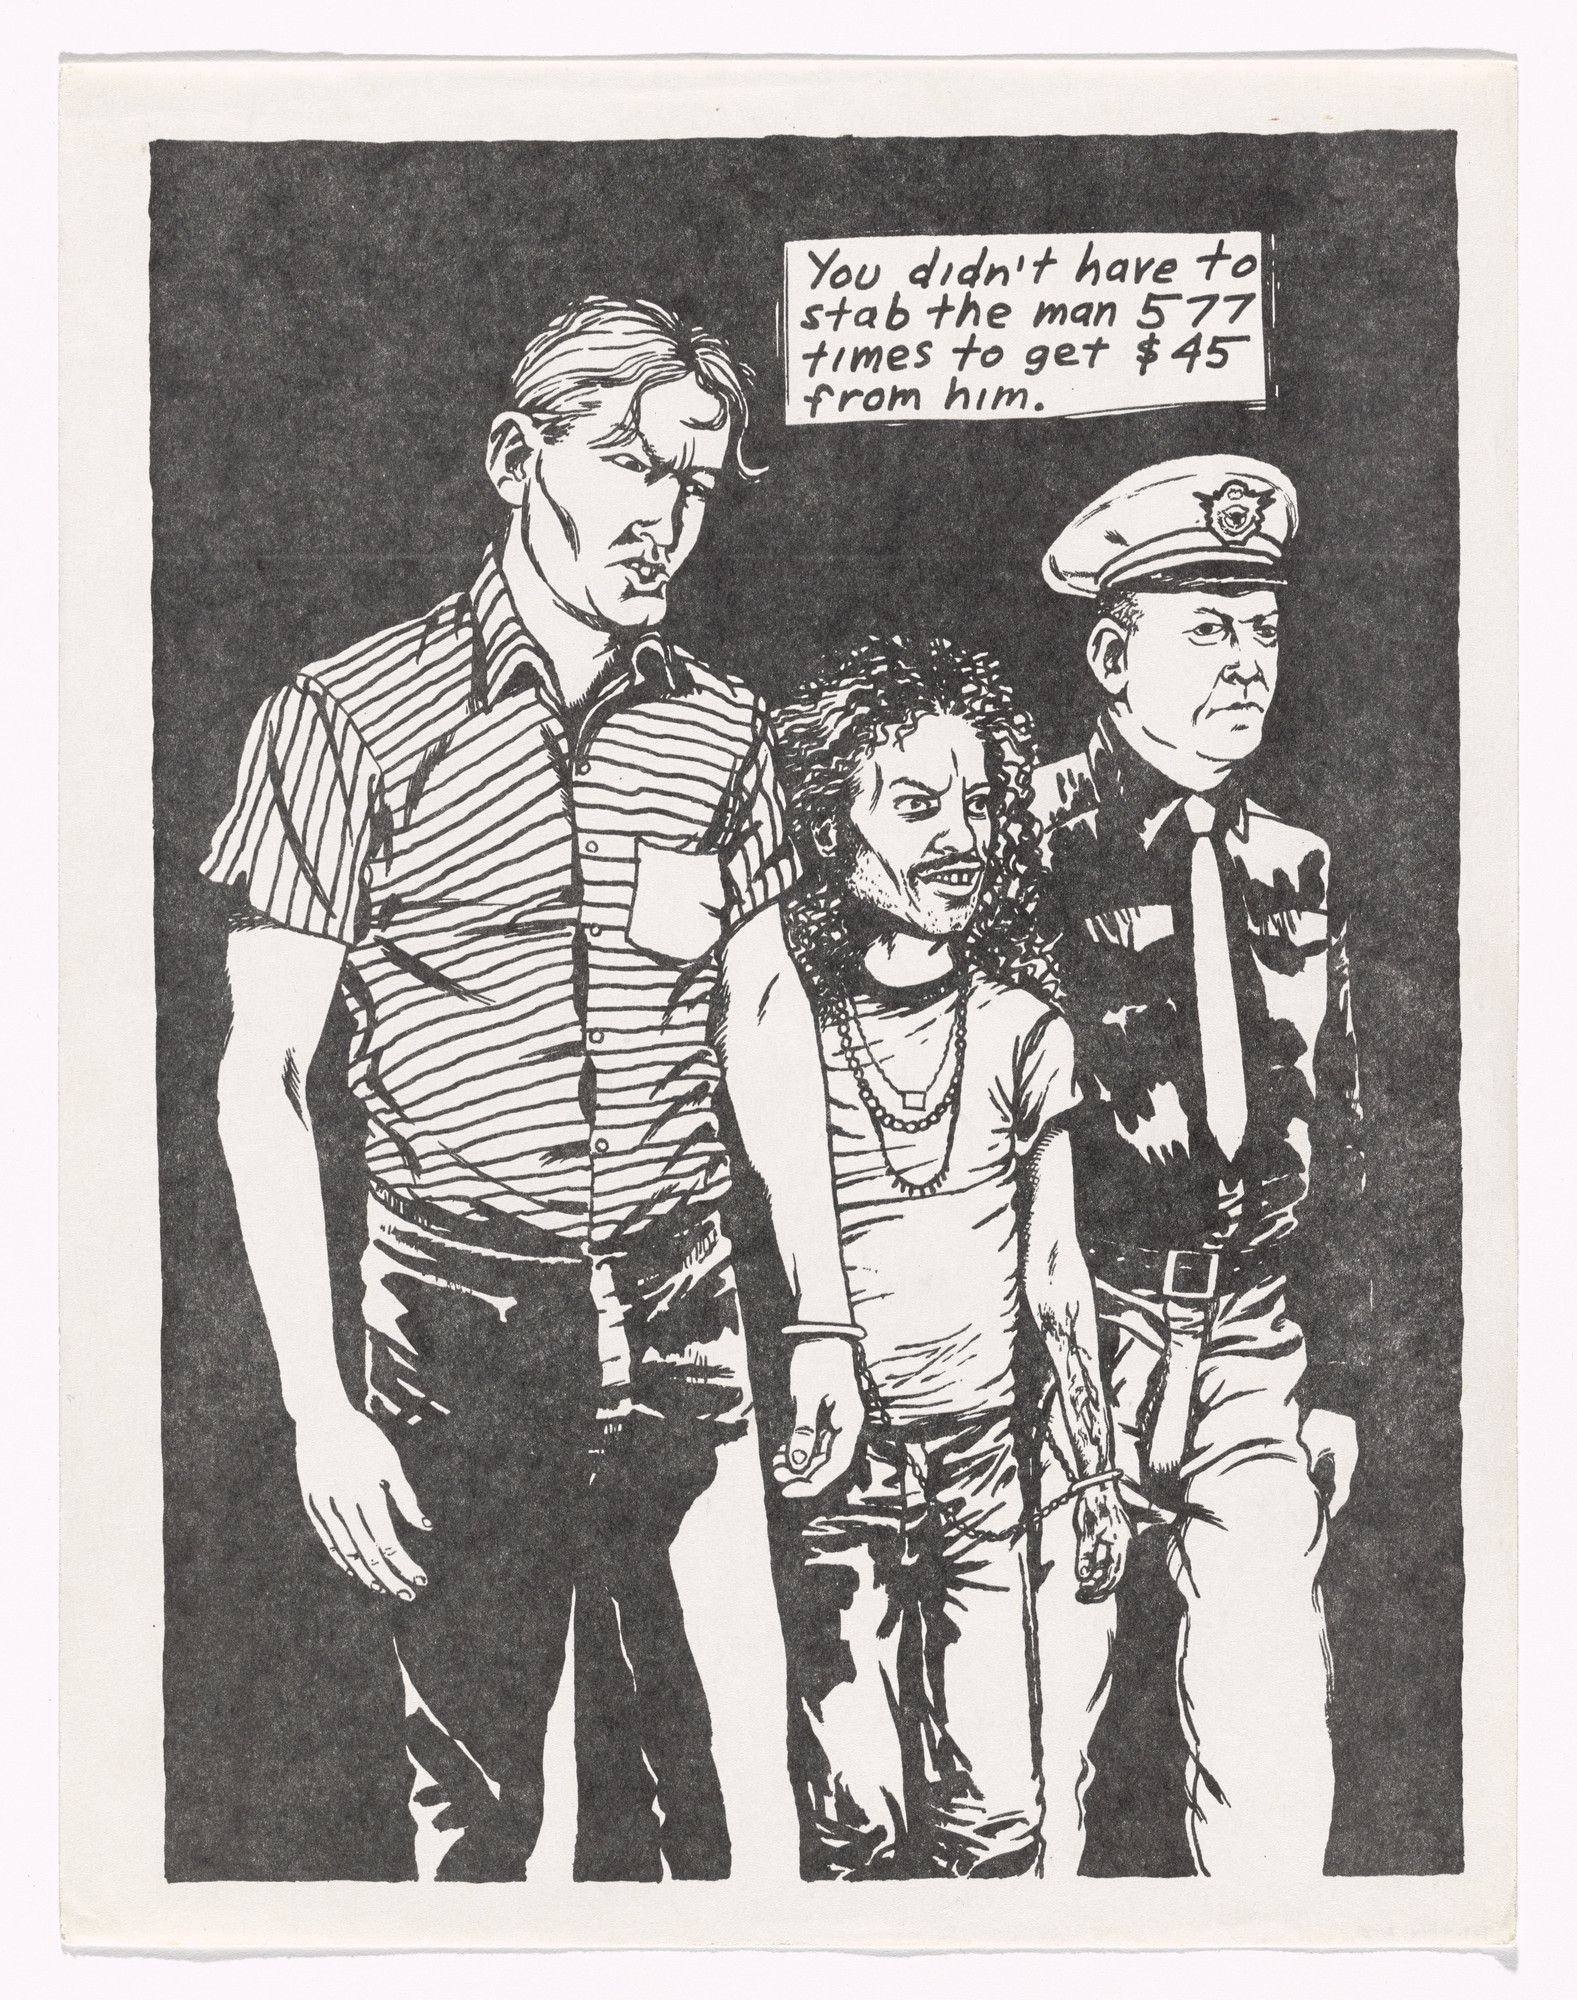 Raymond Pettibon. You didn't have to stab the man. n.d.